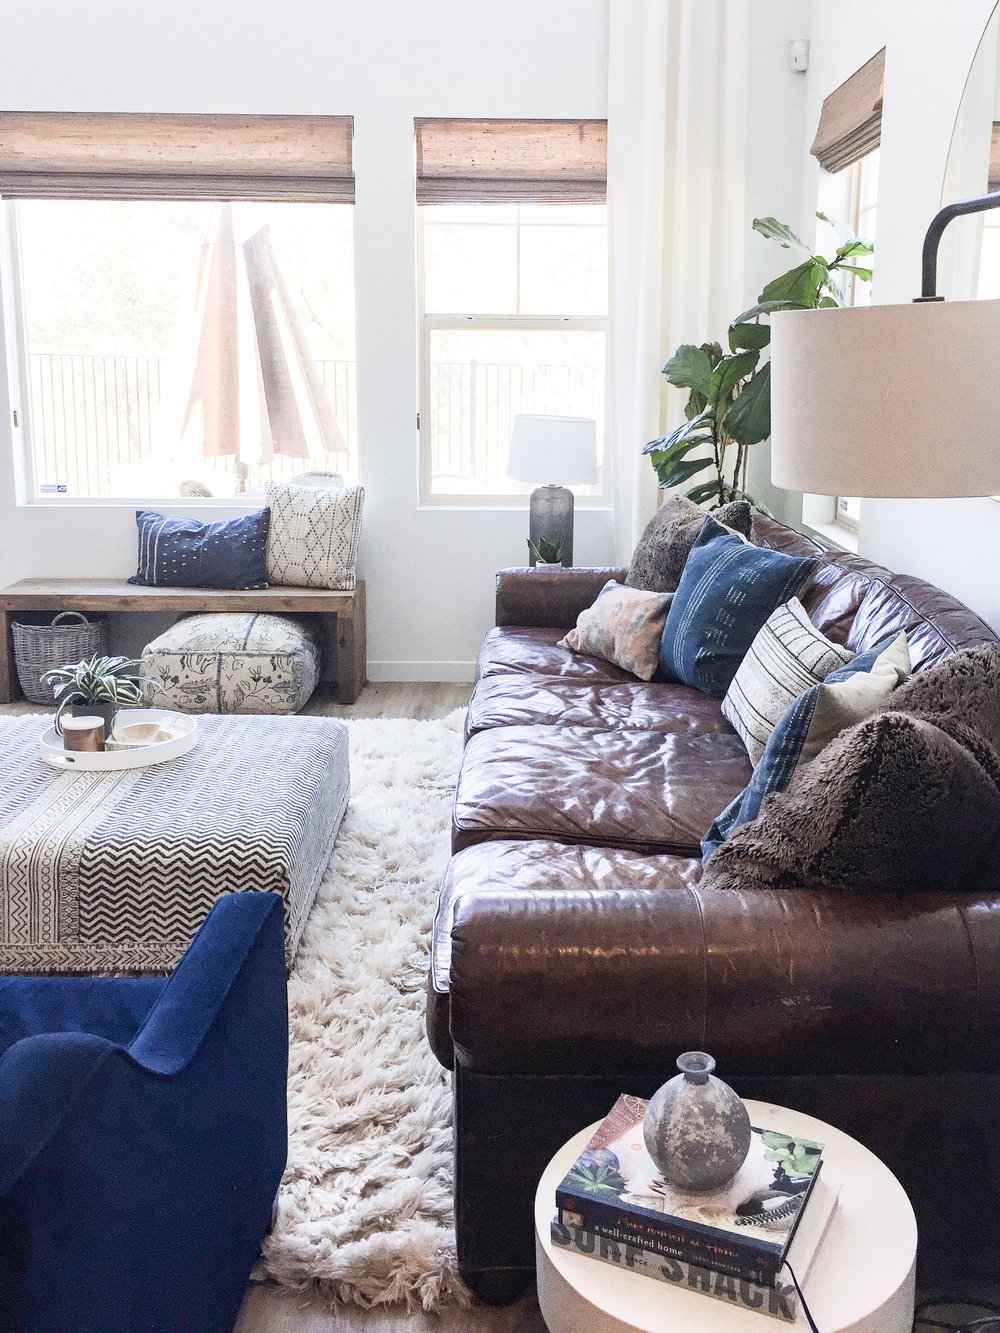 Magnificent Grace Designs A Home Collection Festooning - Home ...